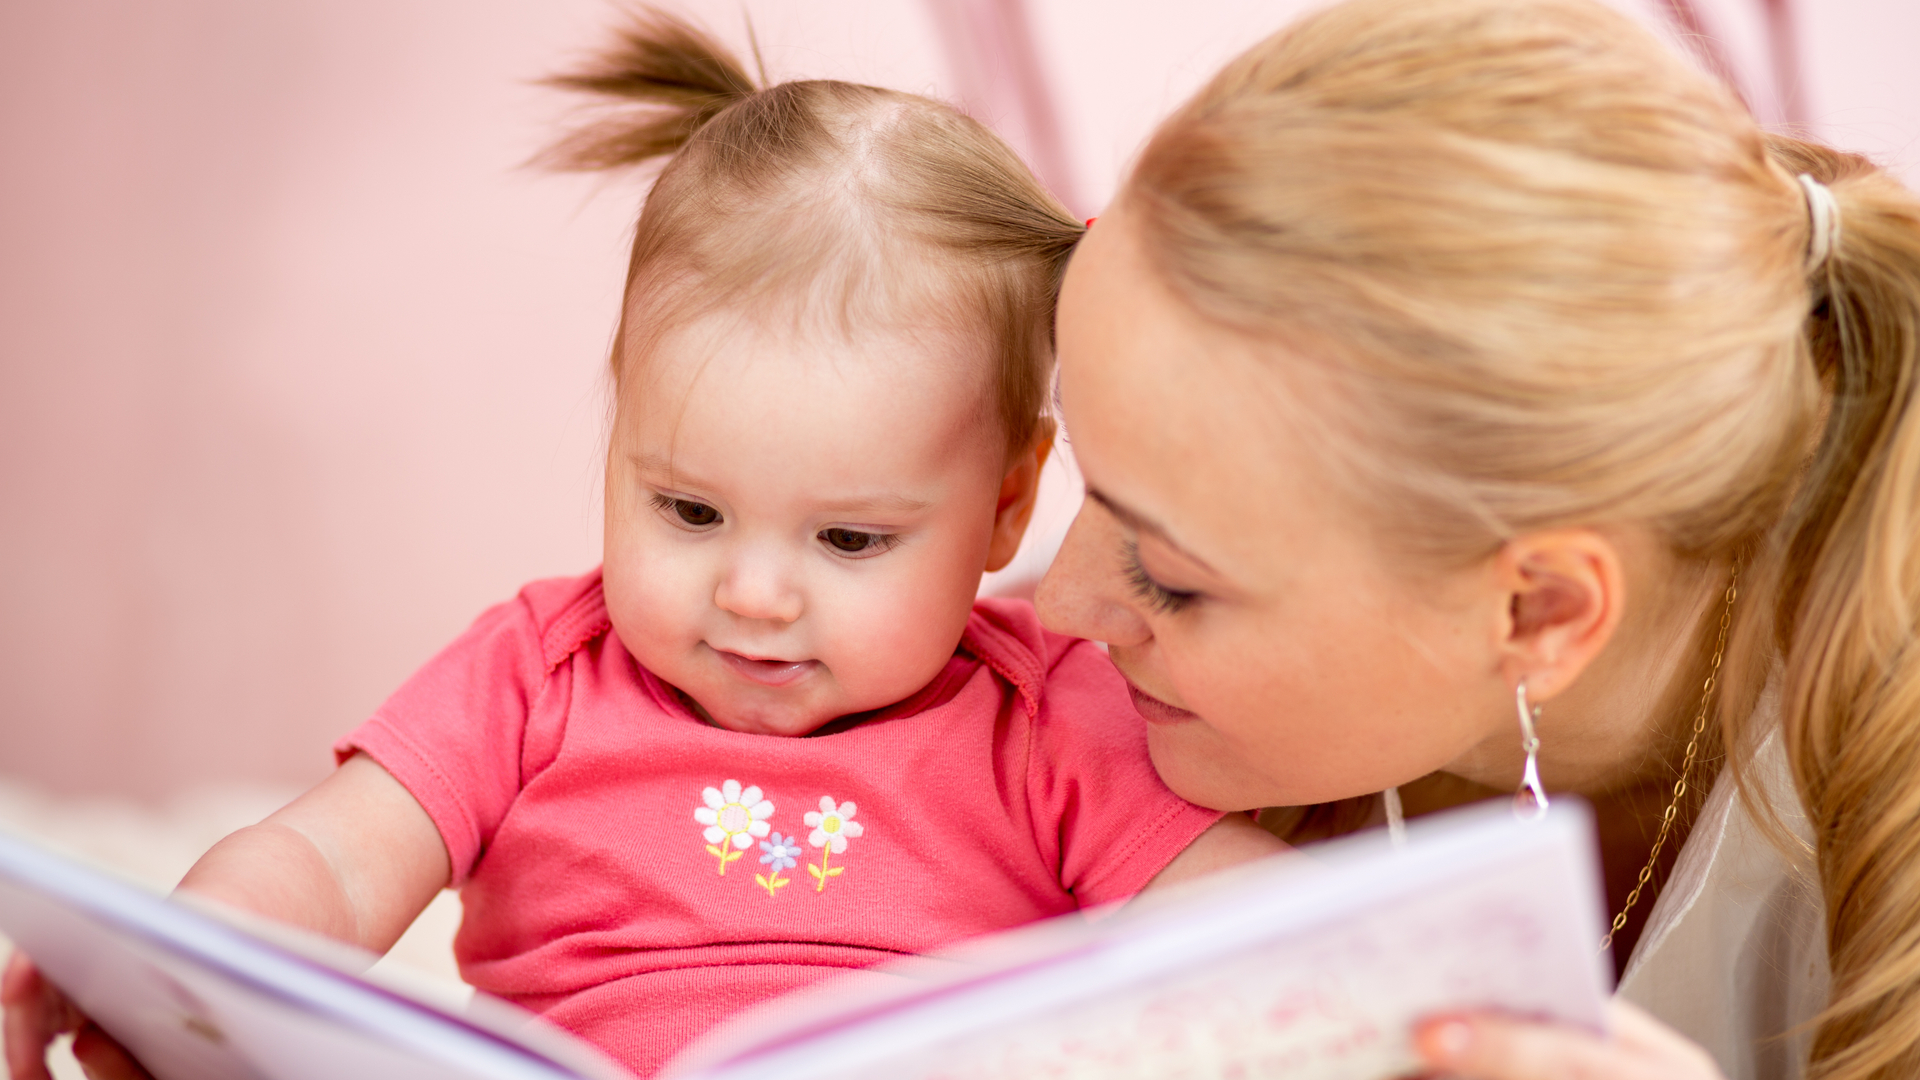 A new way parents can support their child's development